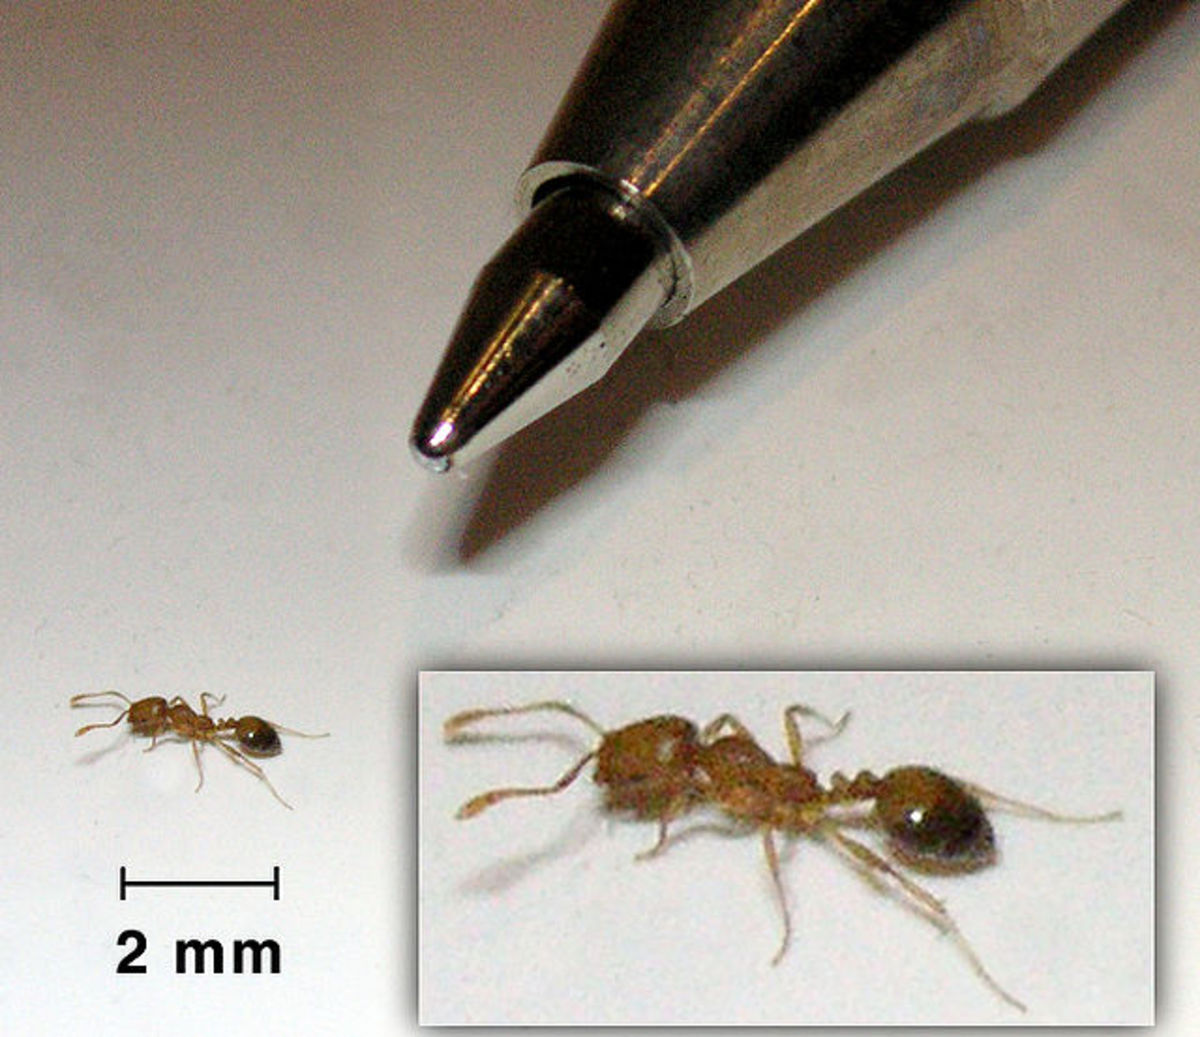 Pharaoh ants are extremely tiny, very invasive, and live only 4-12 months.